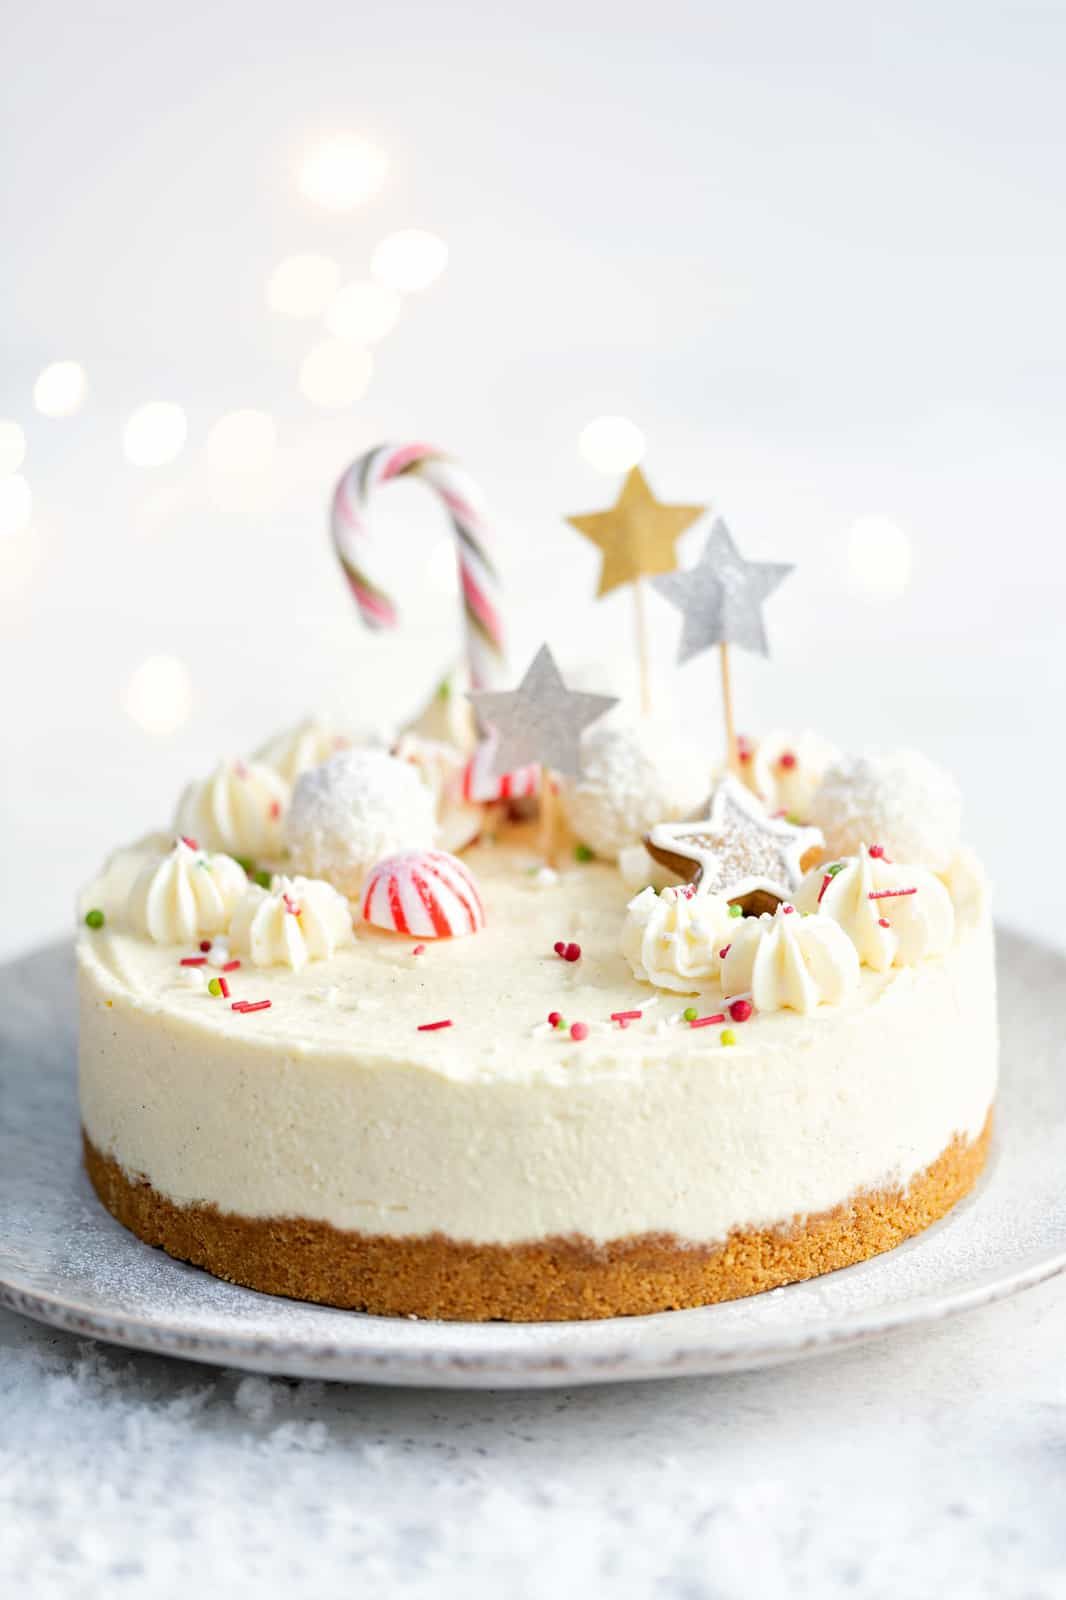 Christmas Cheesecake decorated with festive sprinkles and stars